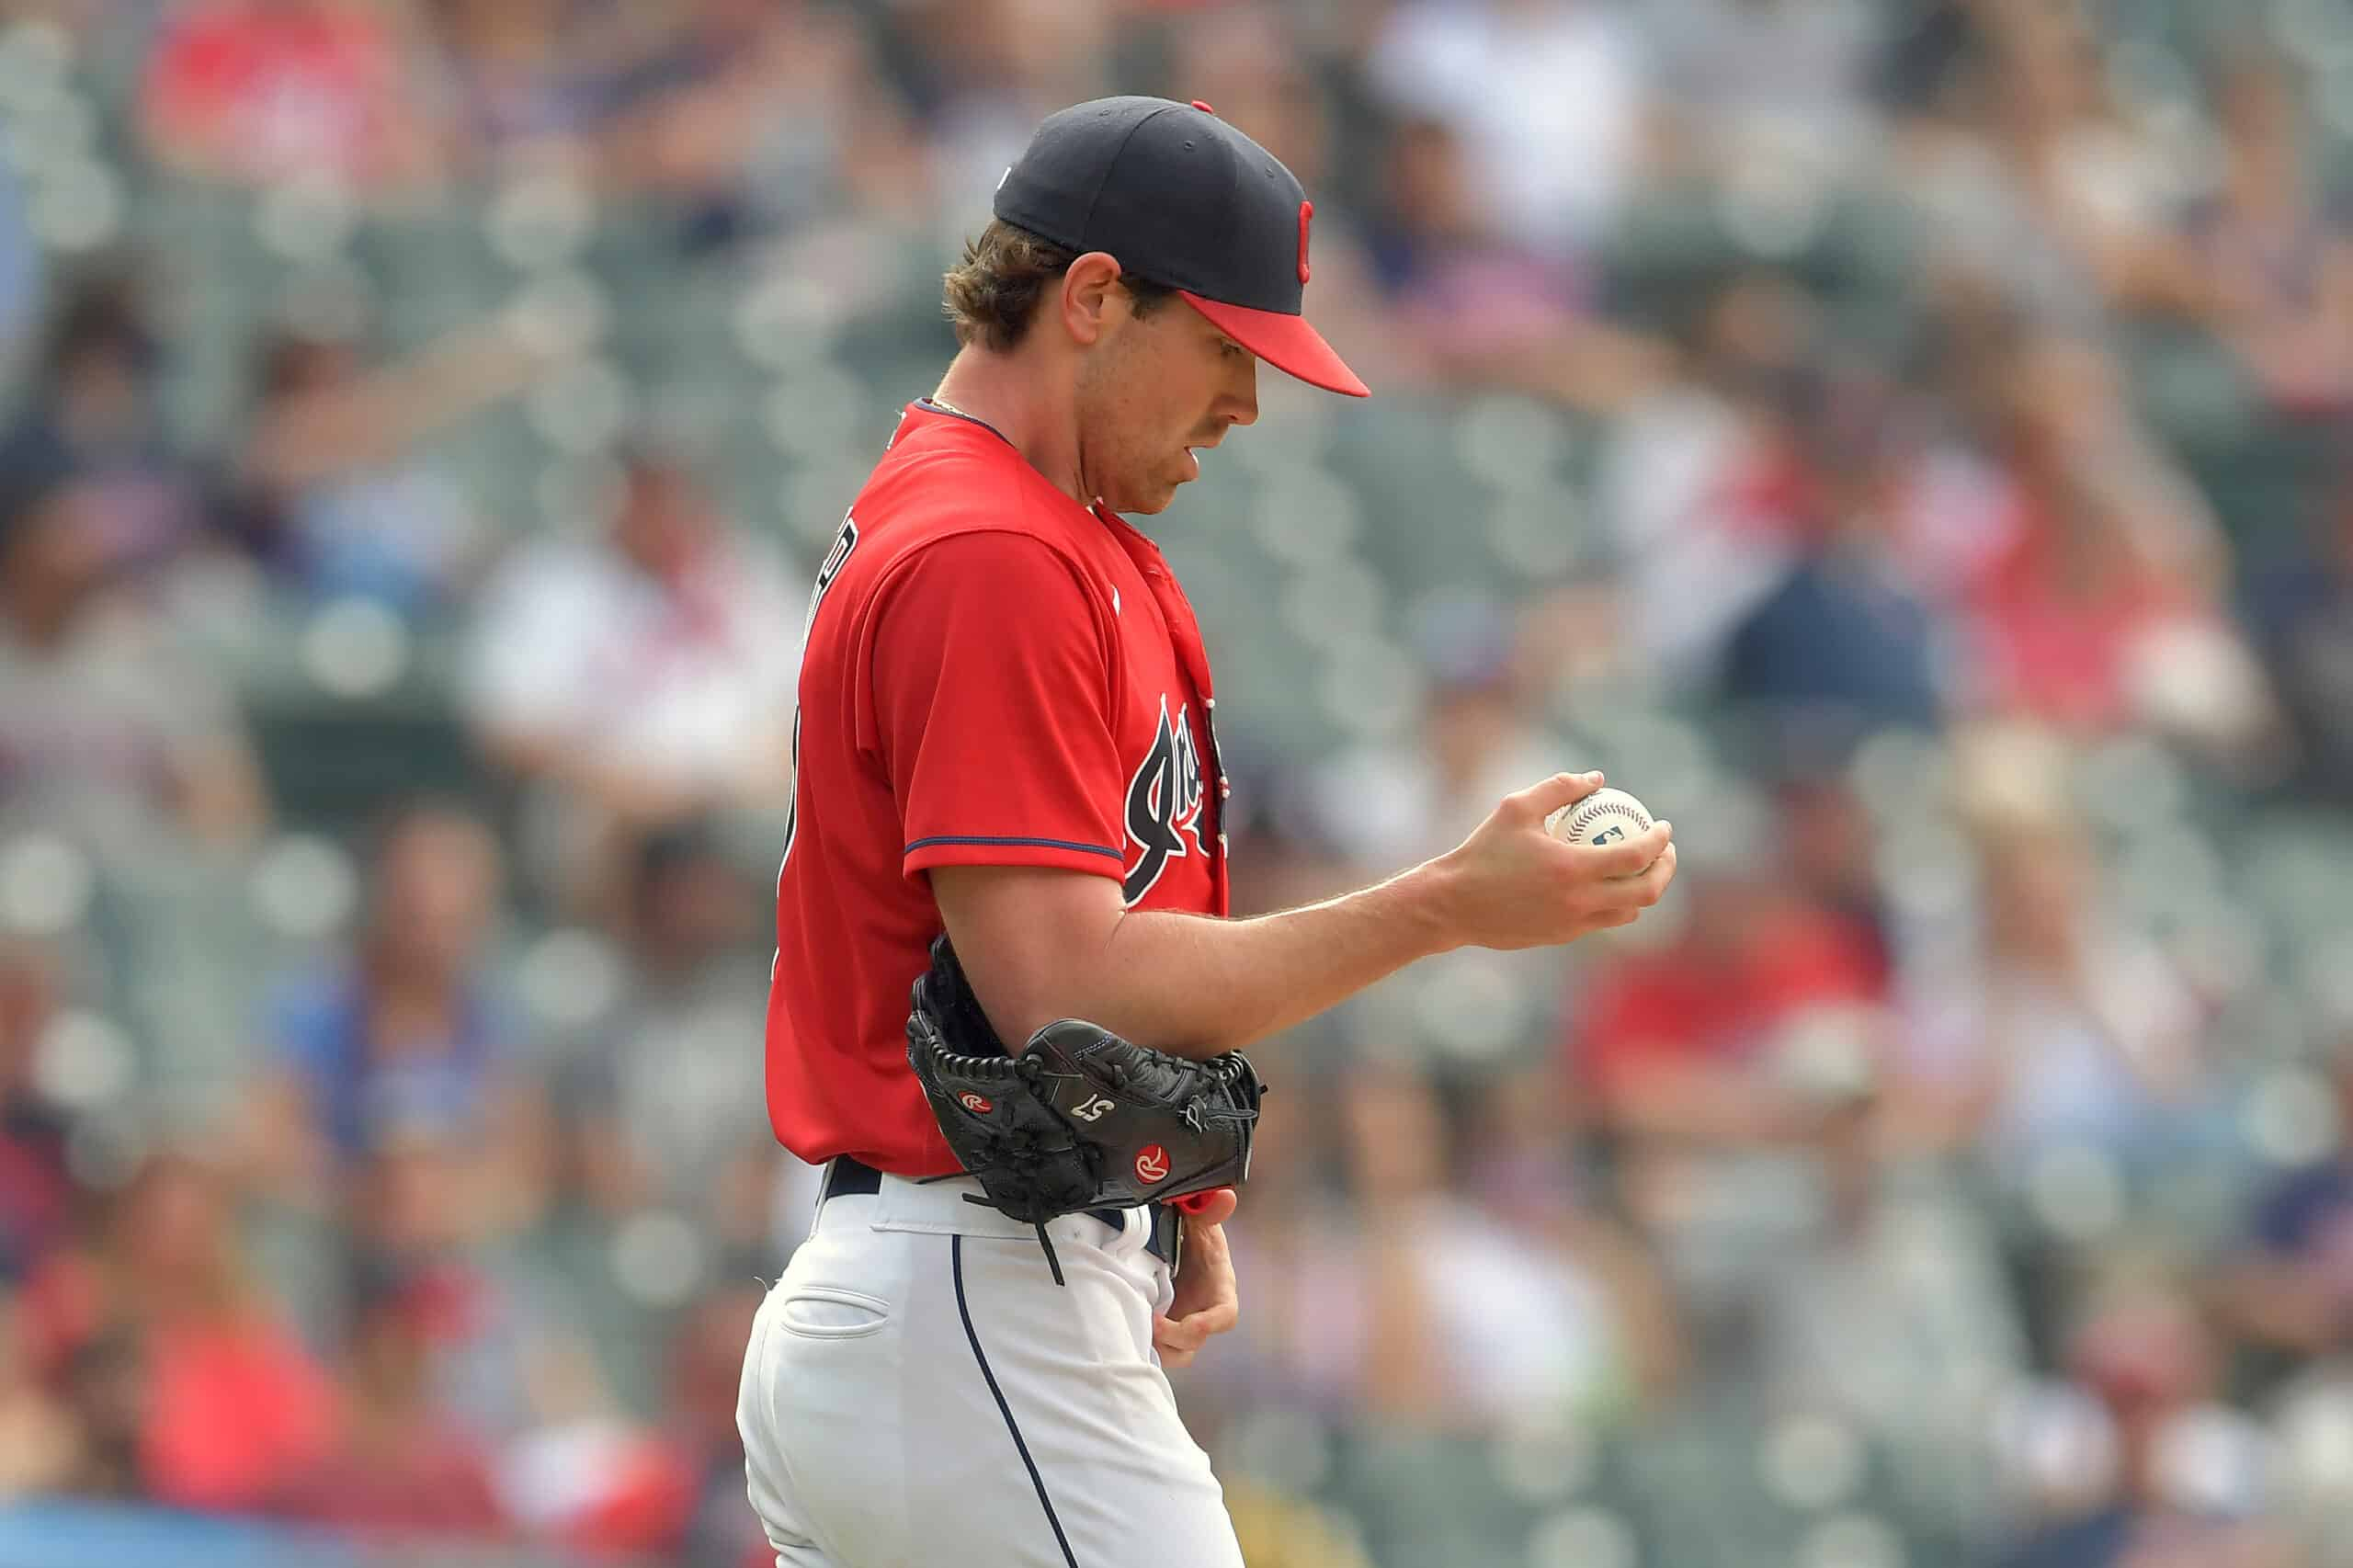 Starting pitcher Shane Bieber #57 of the Cleveland Indians reacts after giving up a solo homer during the fourth inning against the Minnesota Twins at Progressive Field on May 22, 2021 in Cleveland, Ohio.